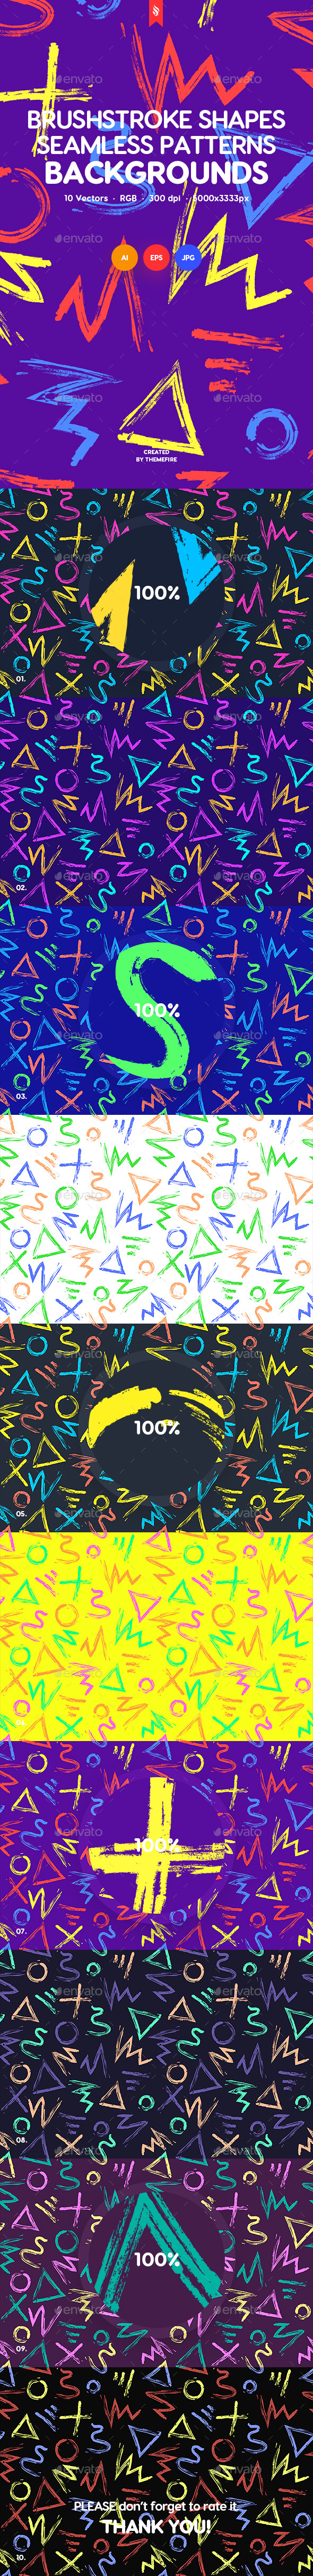 Colorful Hand-Drawn Brushstroke Shapes Seamless Patterns / Backgrounds - Patterns Backgrounds